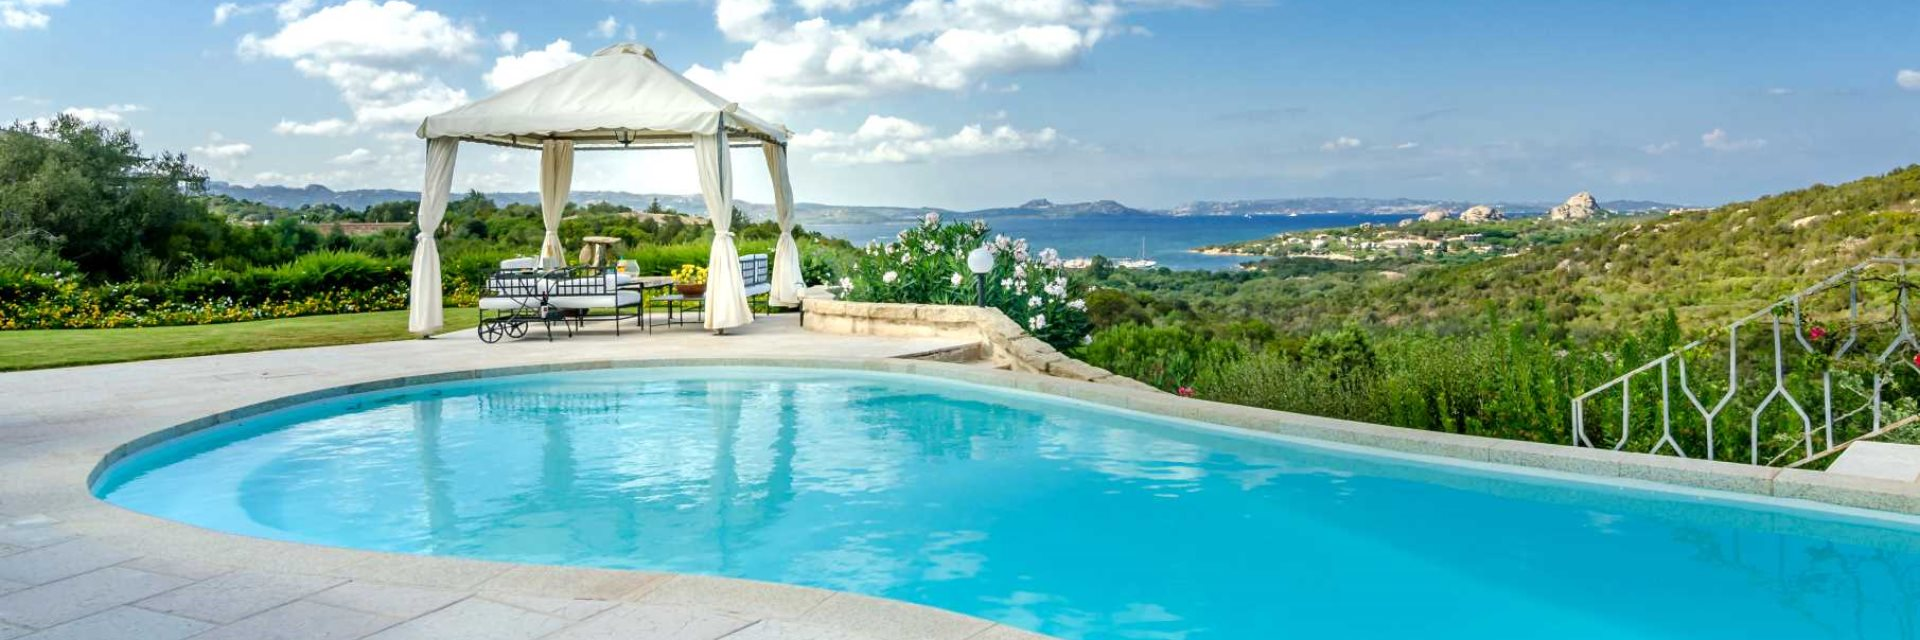 Luxury Holiday Villa With Pool Villa Holidays Sardinia Holiday Ideas